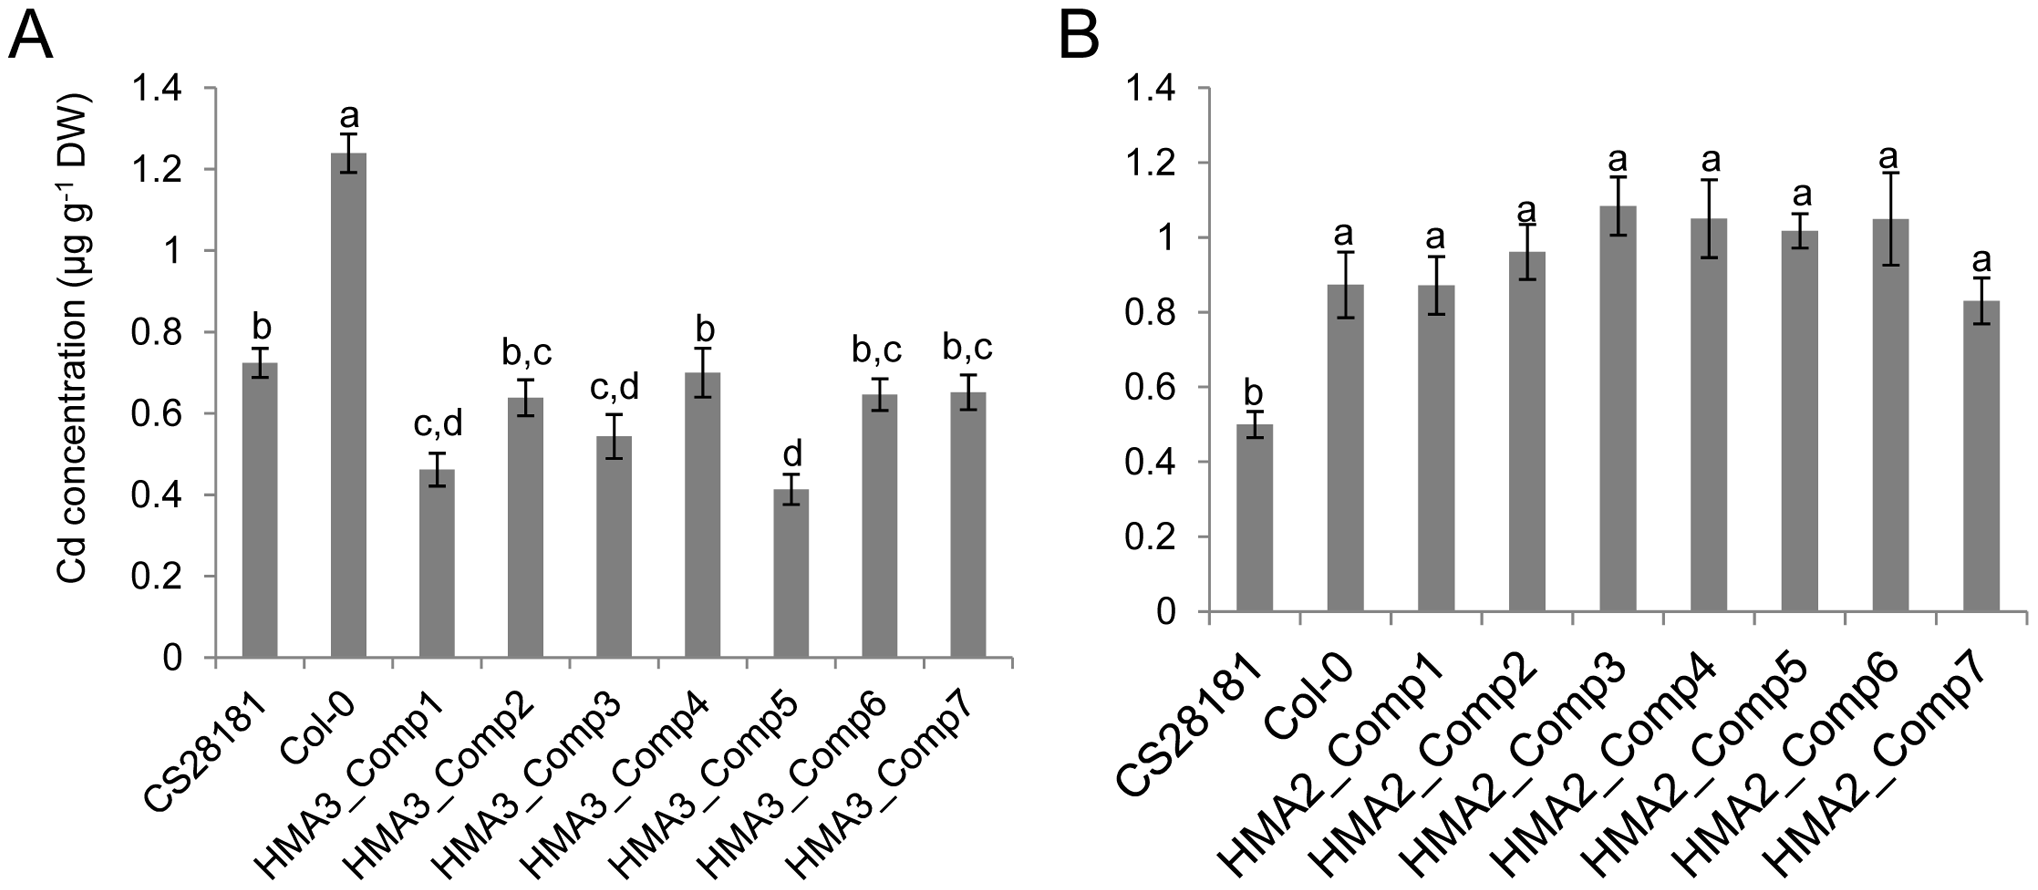 Transgenic complementation of the high leaf Cd phenotype of <i>A. thaliana</i> Col-0.